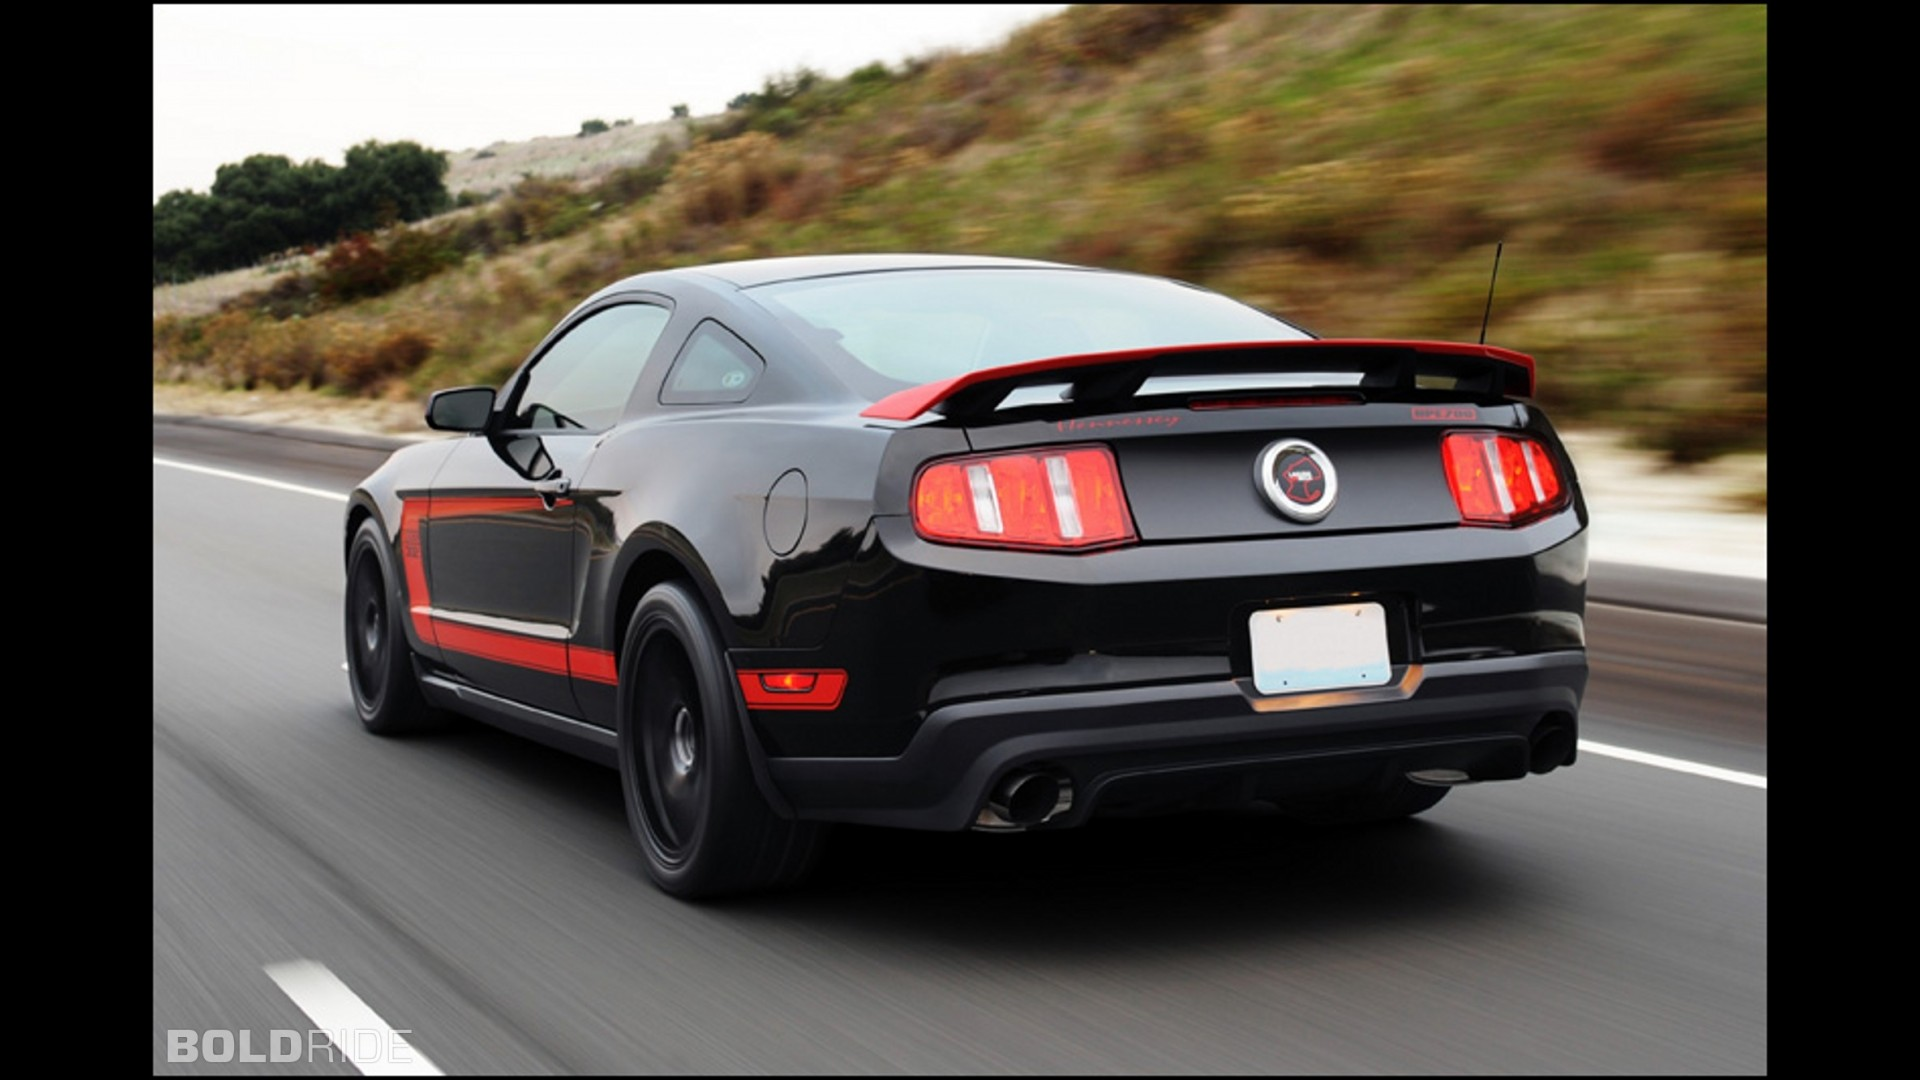 Hennessey HPE 700 Ford Mustang Boss 302